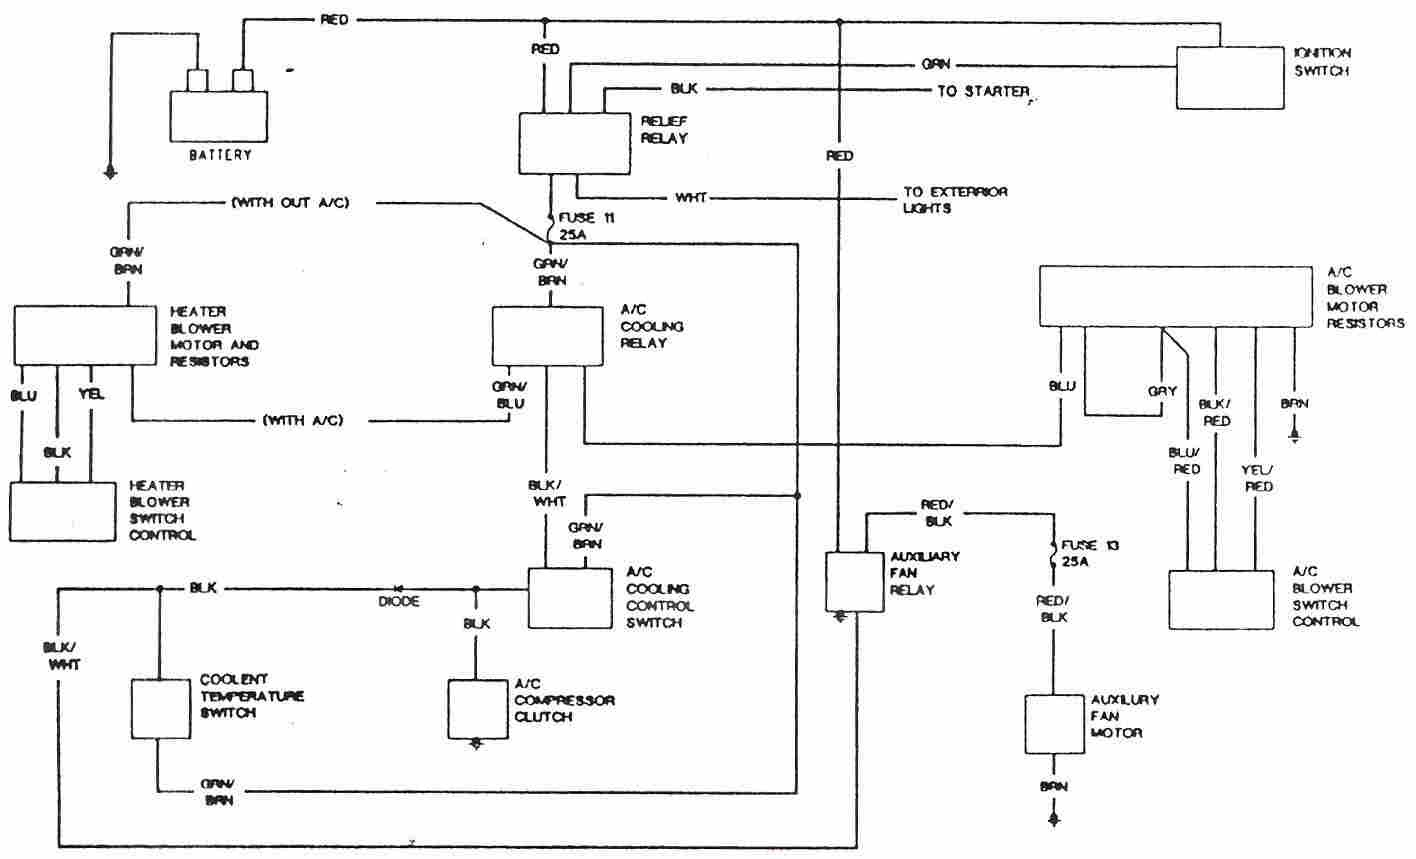 Awesome Car Air Conditioning System Wiring Diagram Contemporary